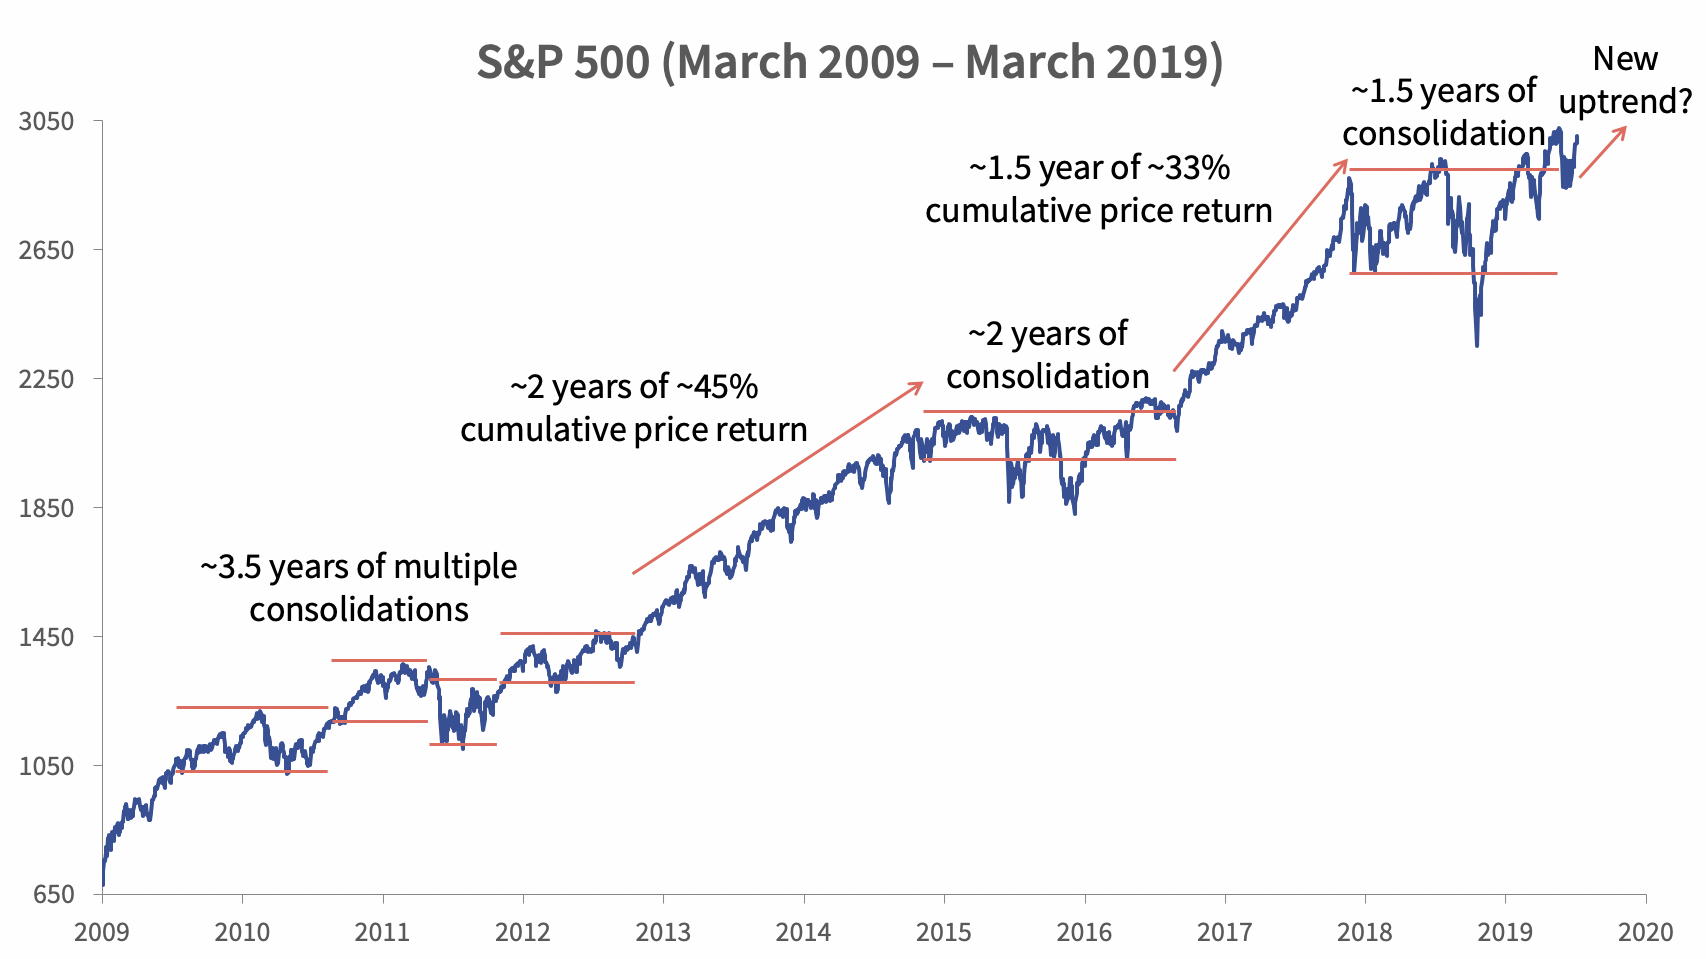 S&P 500 (March 2009 – March 2019)